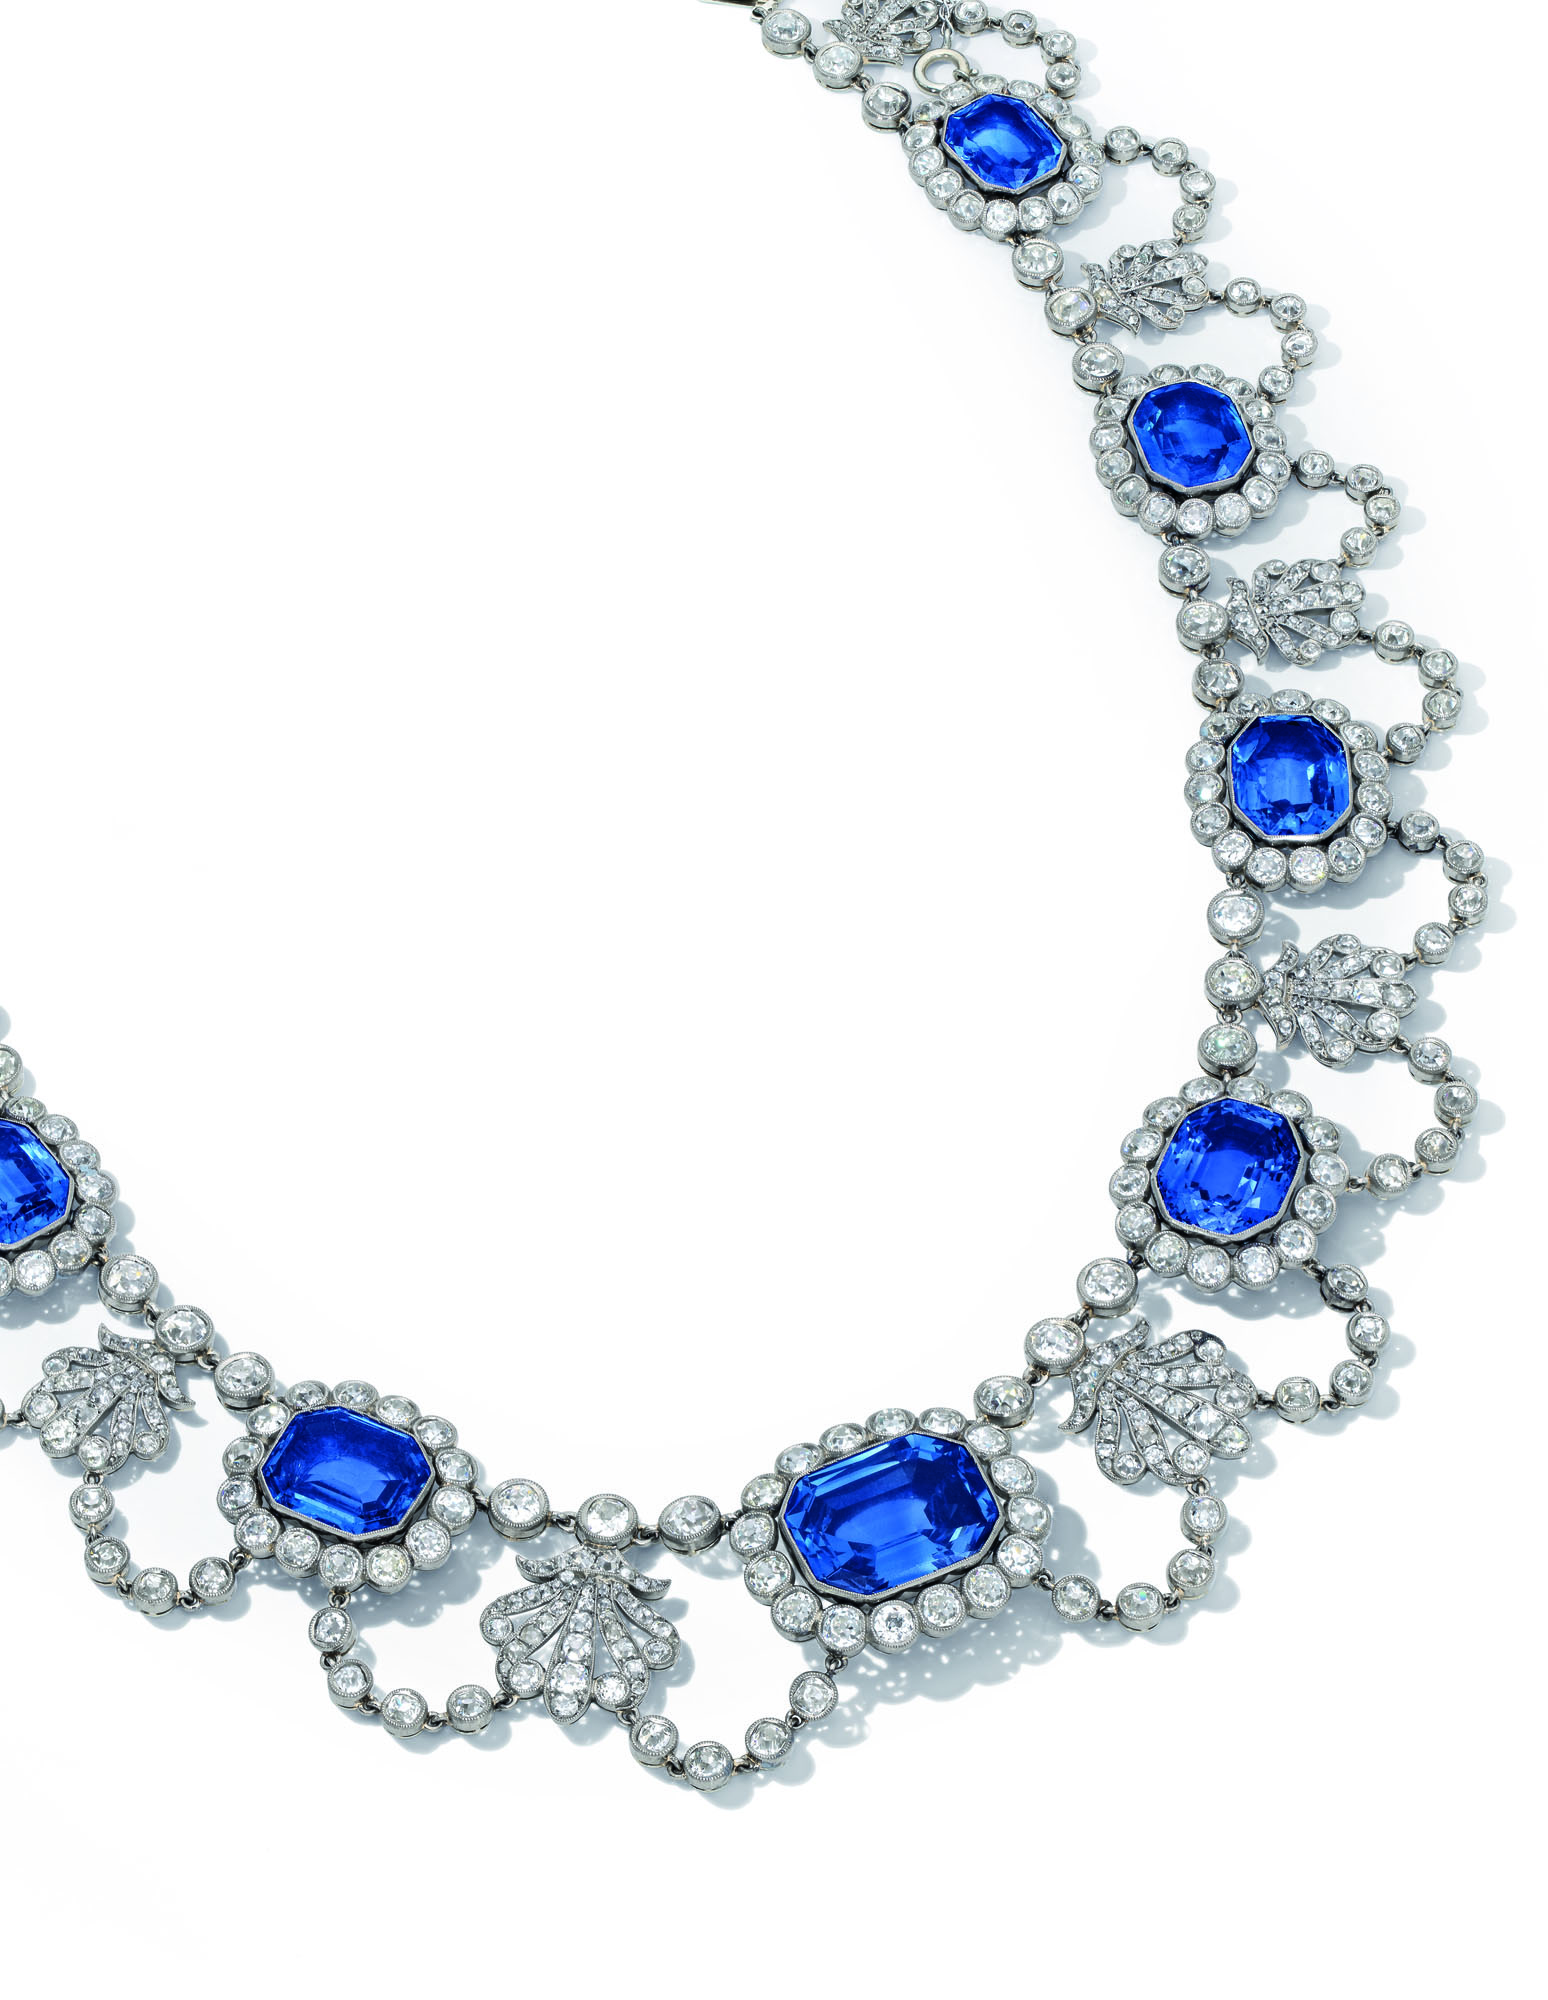 EARLY 19TH CENTURY SAPPHIRE AND DIAMOND NECKLACE